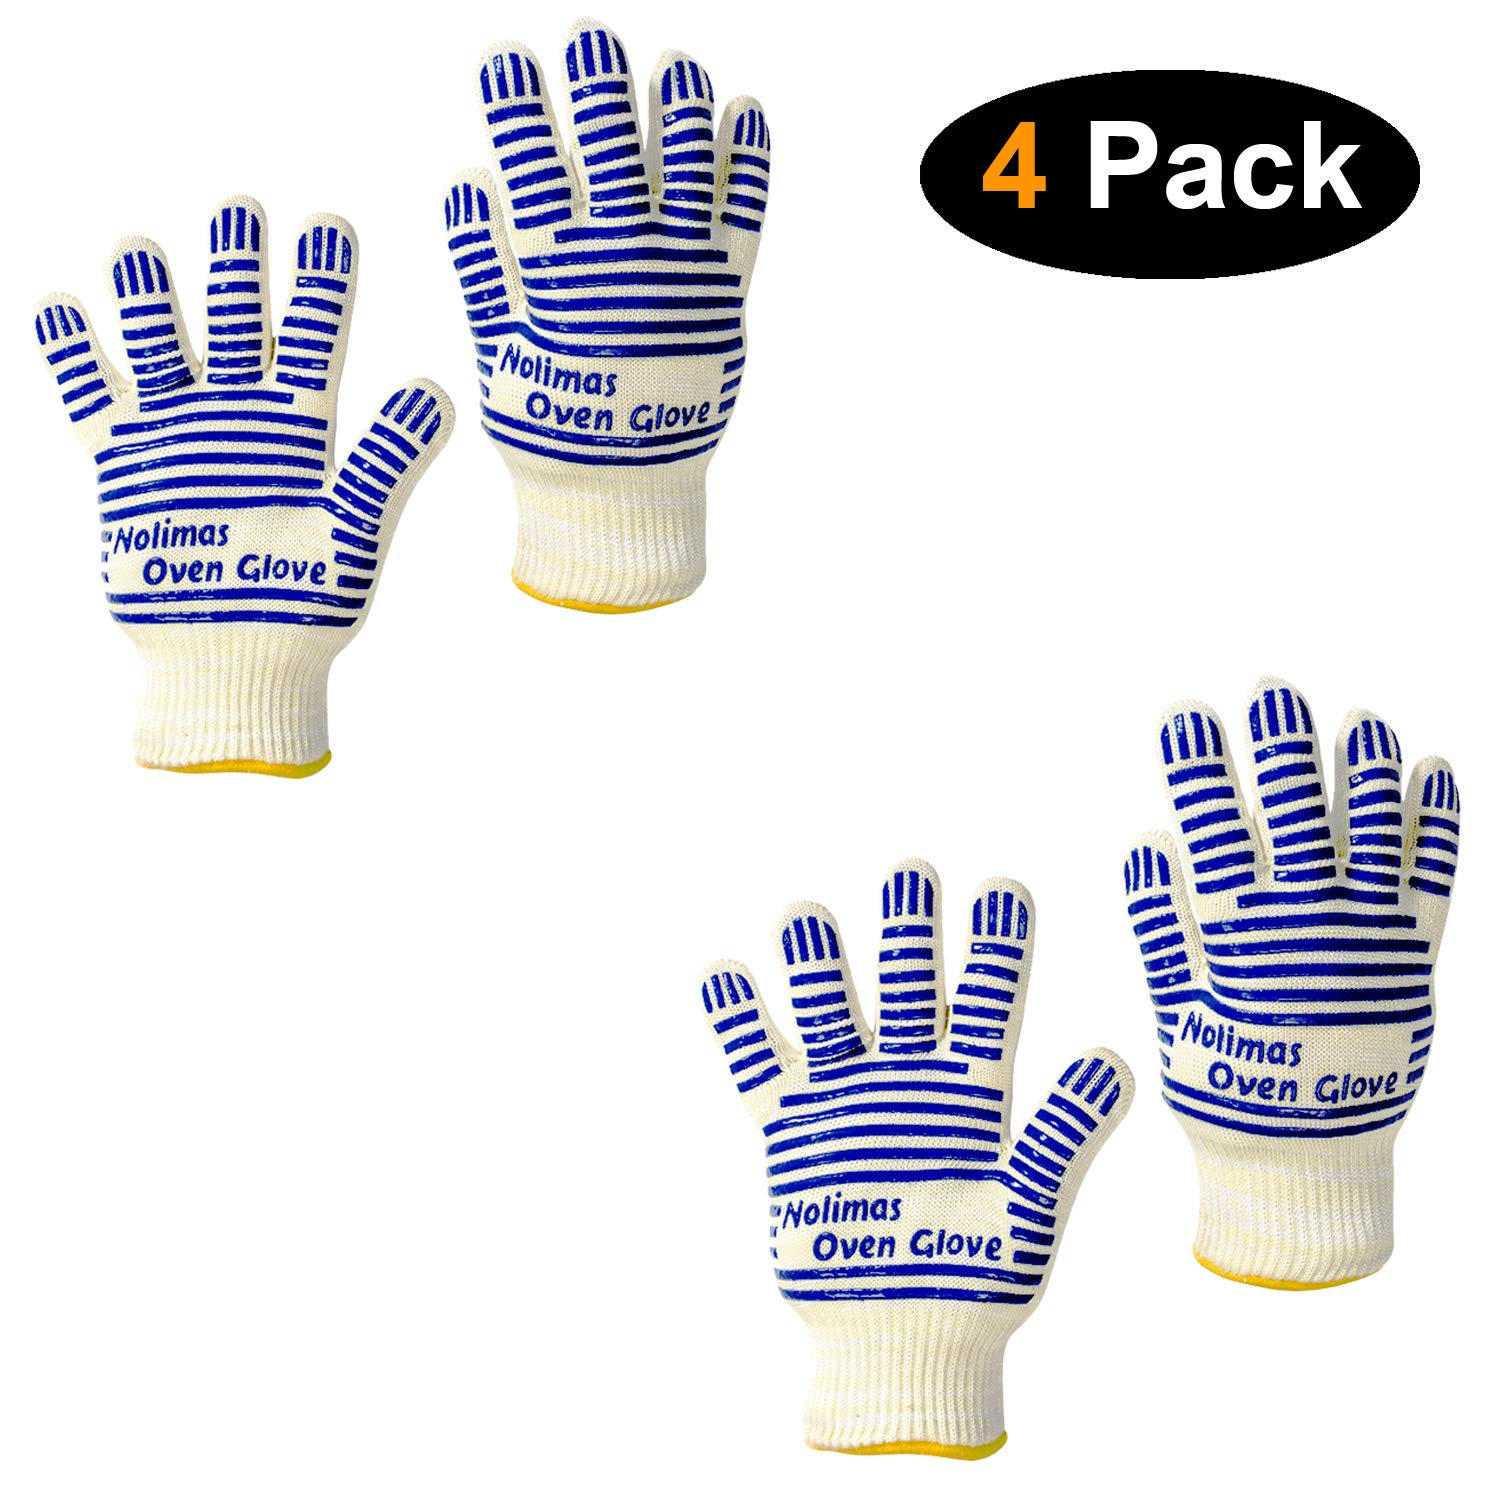 Nolimas Extreme Heat Resistant Grilling Oven Gloves,Food Grade Kitchen BBQ Glove - EN407 Certified Protective Silicone Non-Slip Oven Mitts for Barbecue,Cooking,Cutting Baking Welding,Blue,4 Pack by Nolimas